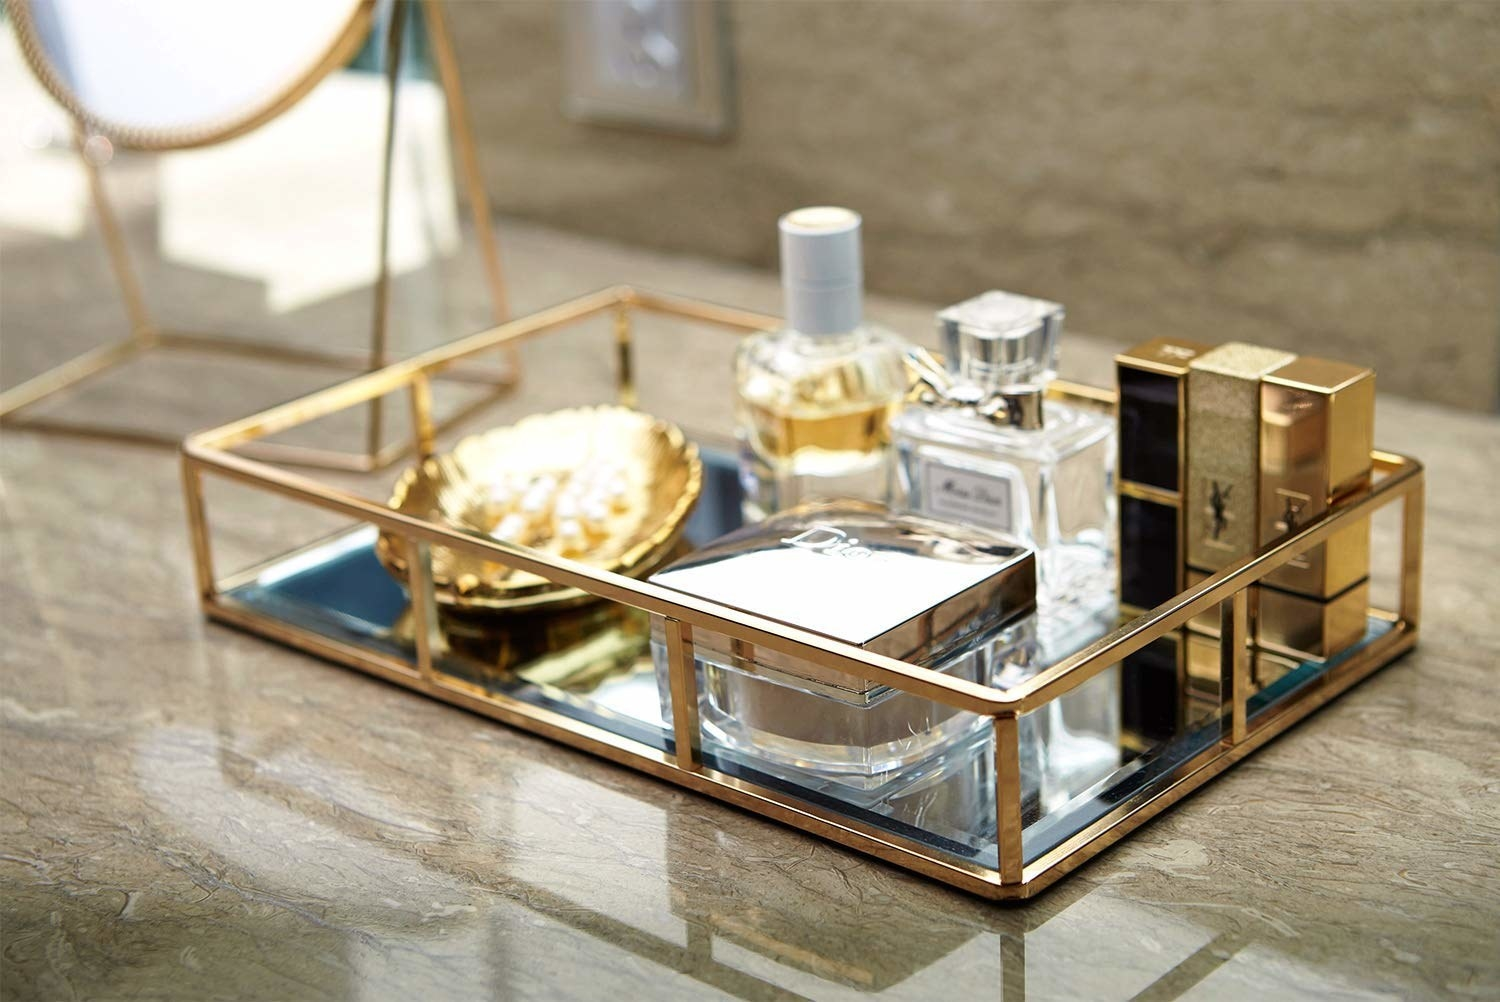 Rectangular tray with two-inch gold railing around the sides, so you can see the cosmetics on it easily